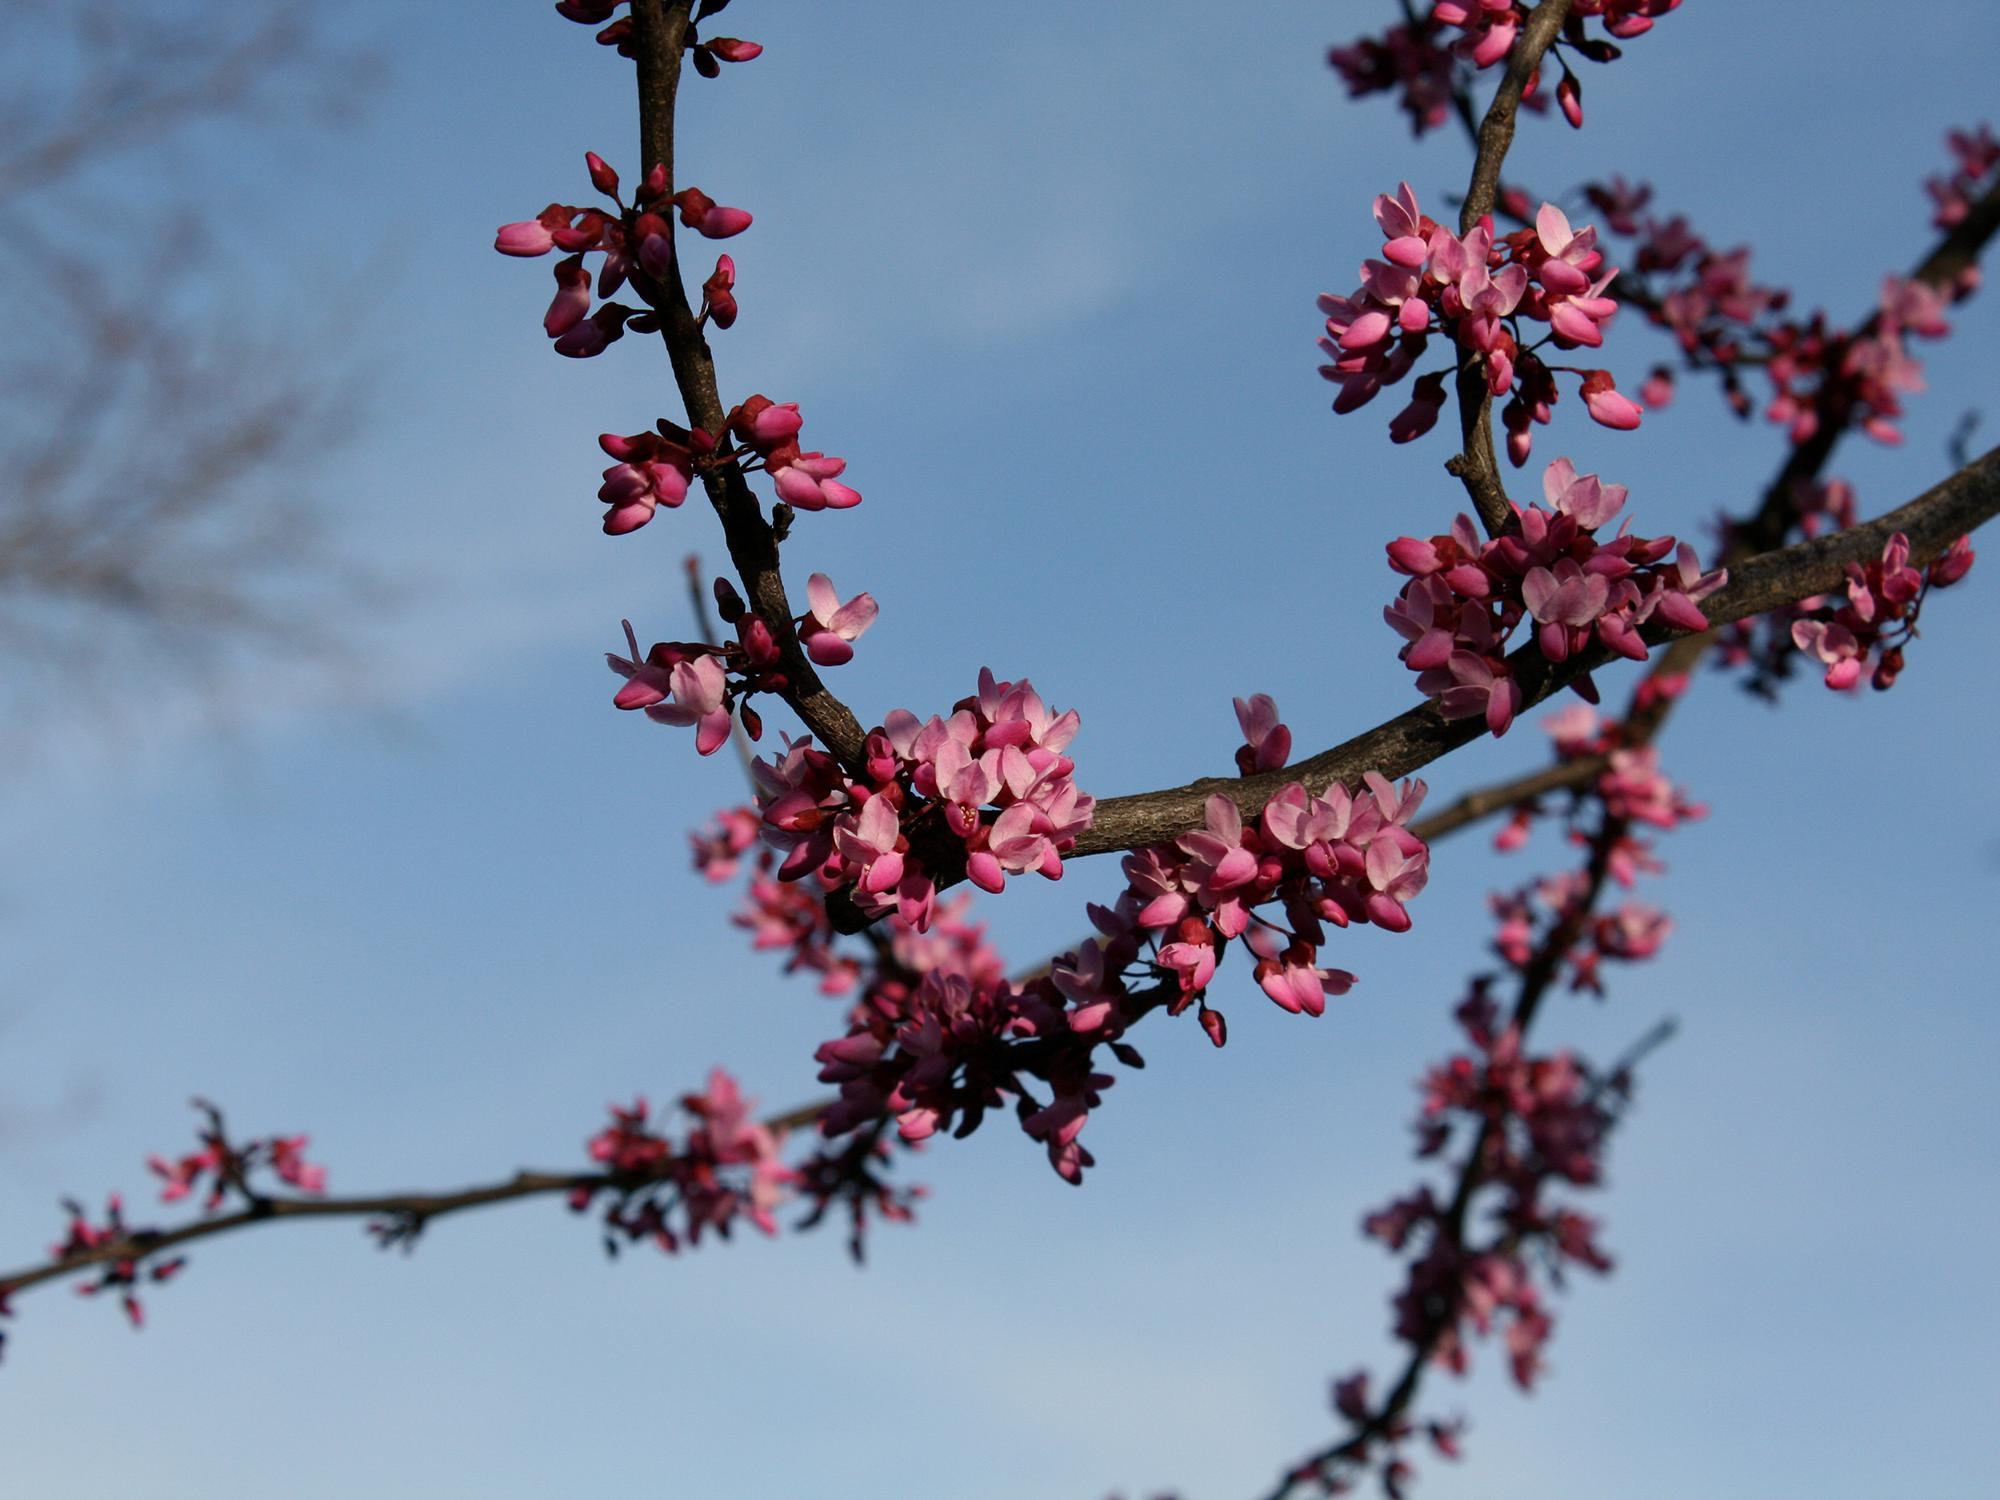 Pea-sized redbud flowers hang from thin tree branches.